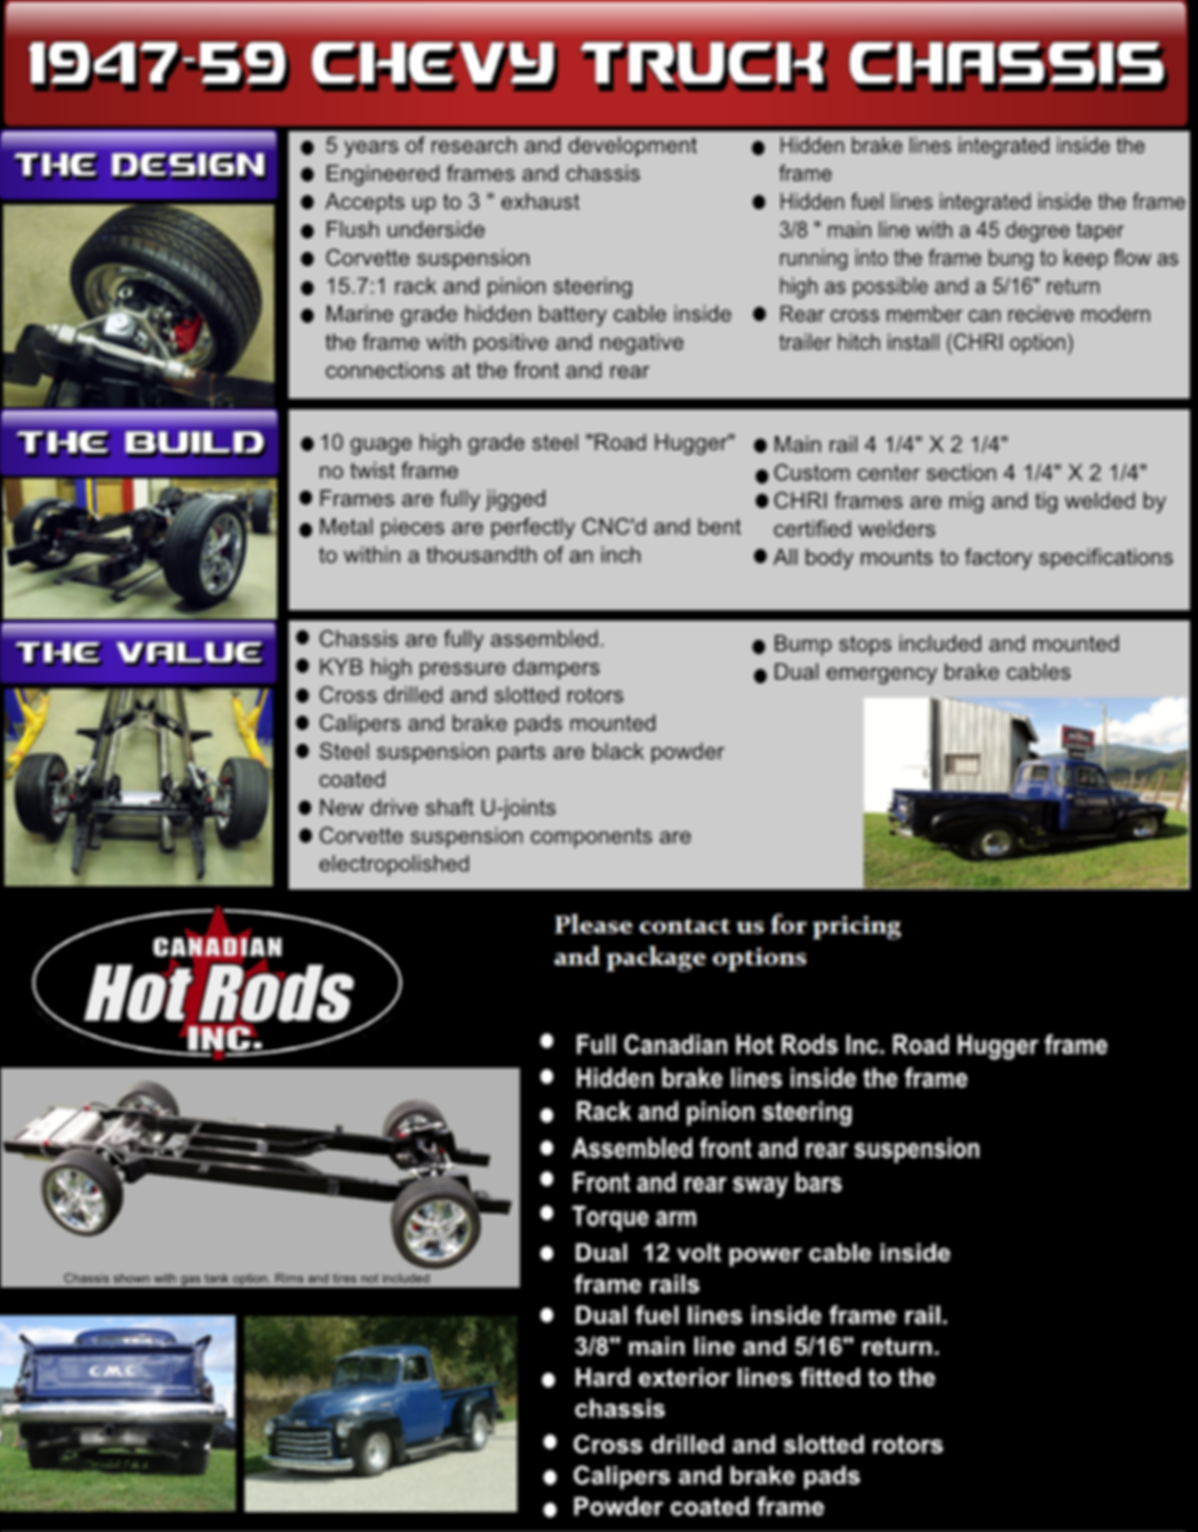 47-59 chevy truck webpage info.png